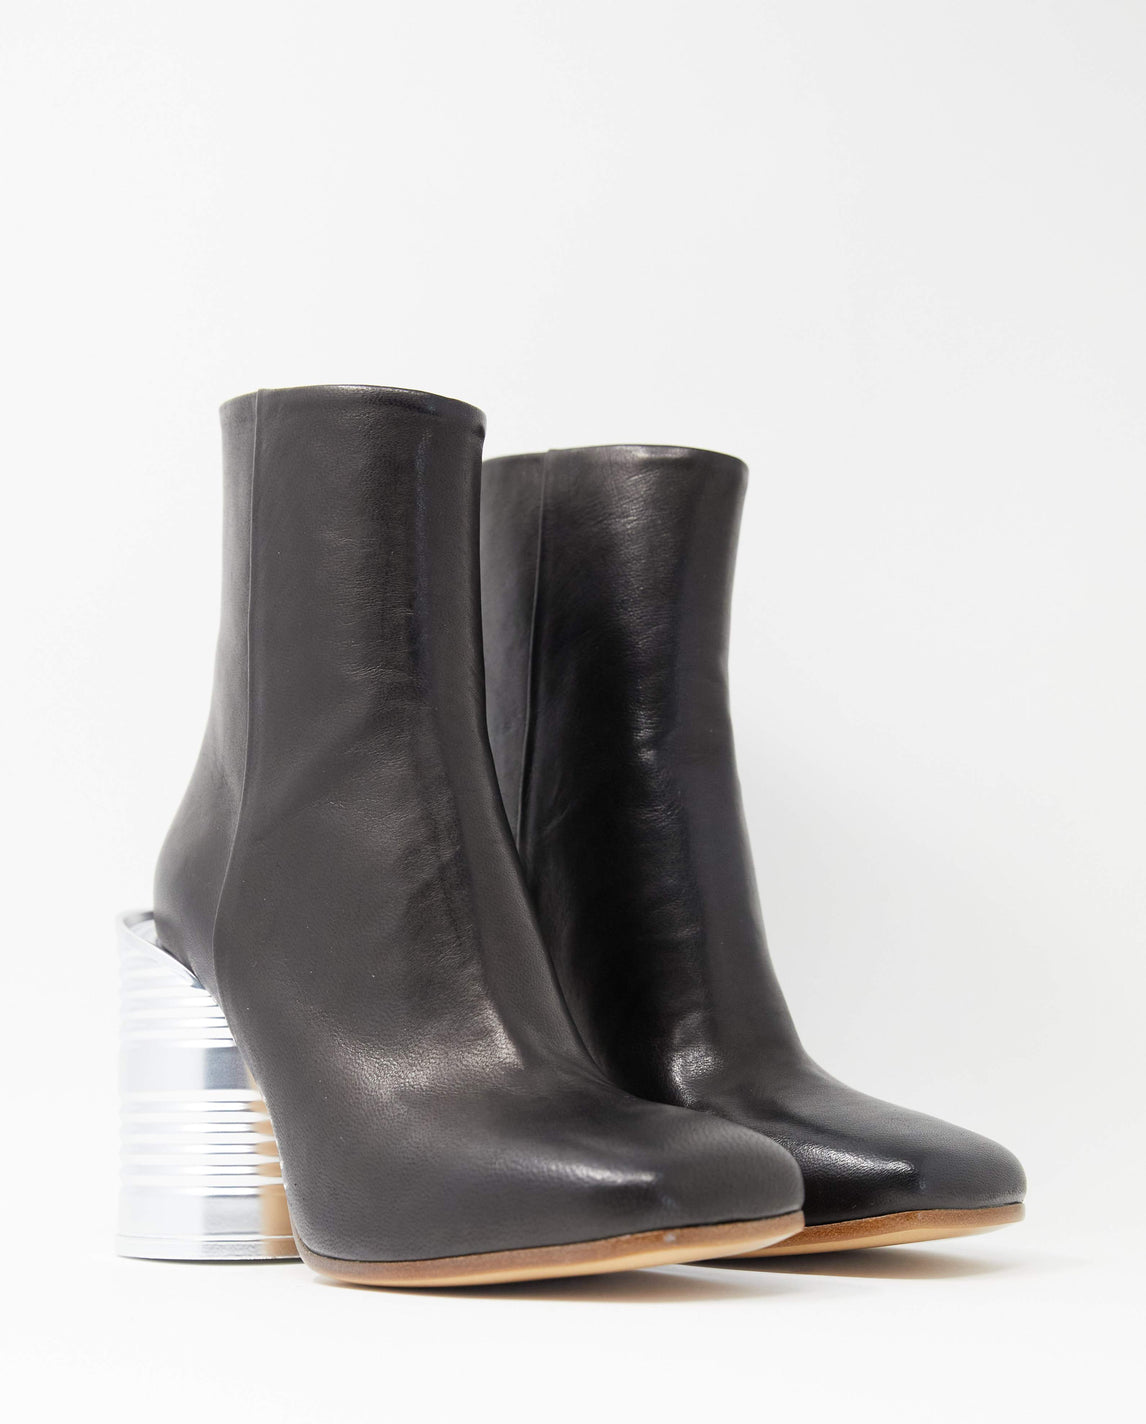 Tin Can Ankle Boot - Black WOMENS MM6 MAISON MARGIELA